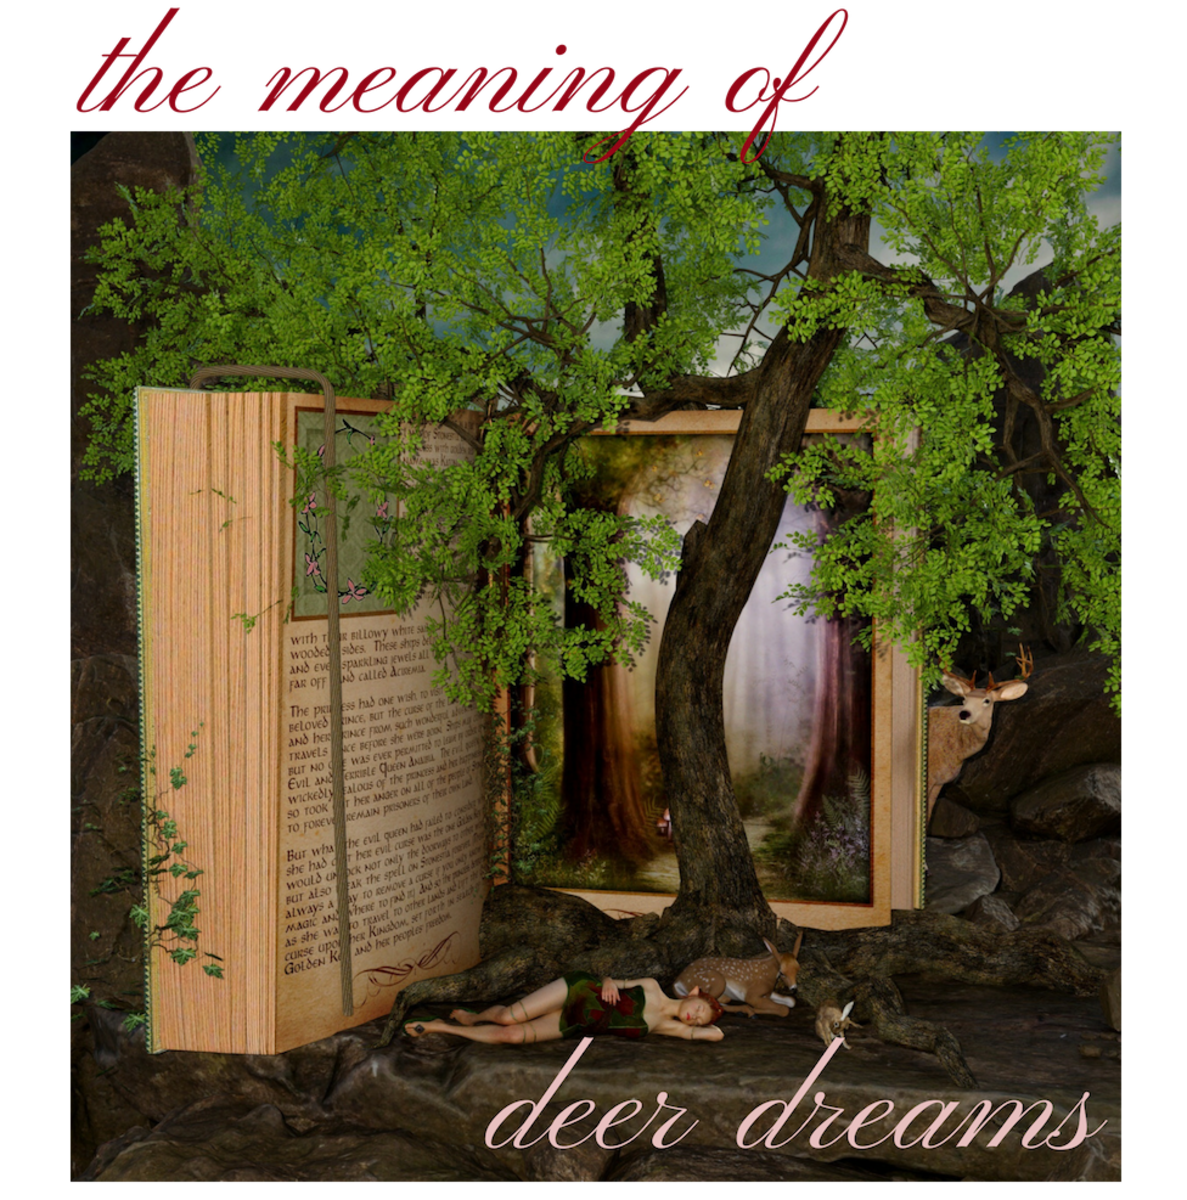 What Do Deer Mean in Dreams?